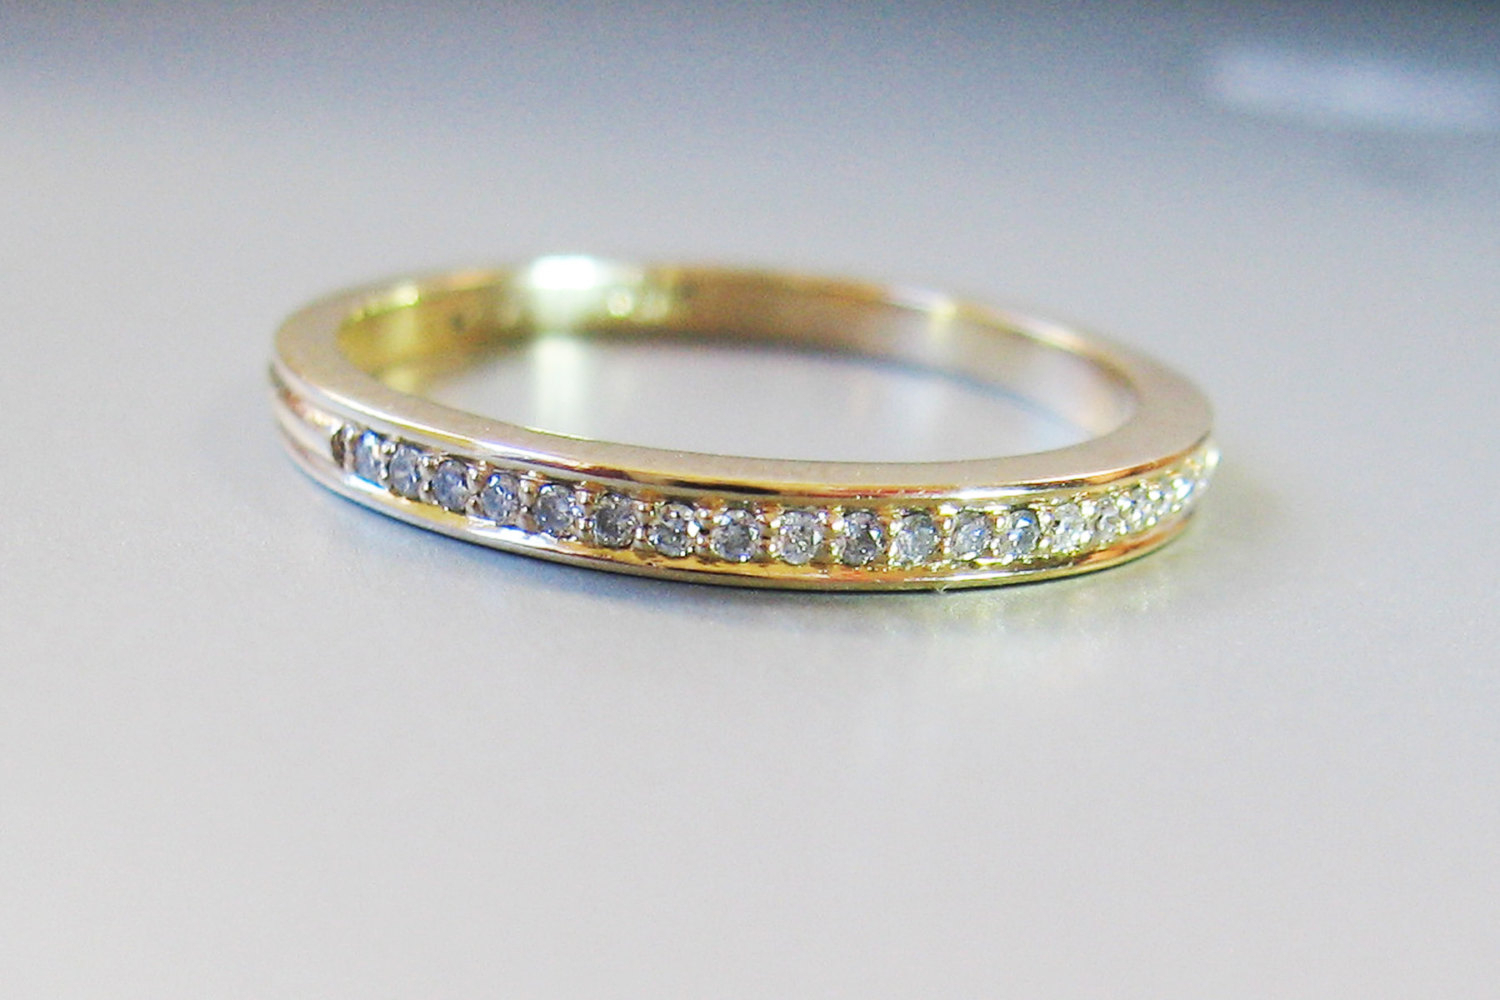 Micro Pave Diamond Eternity Ring 2mm In 14k Gold, Handmade Diamond Band,  Tiny Diamond Wedding Ring, Engagement Ring, Narrow Wedding Band From Arpelc With 2017 Micropavé Diamond Narrow Wedding Bands (View 4 of 25)